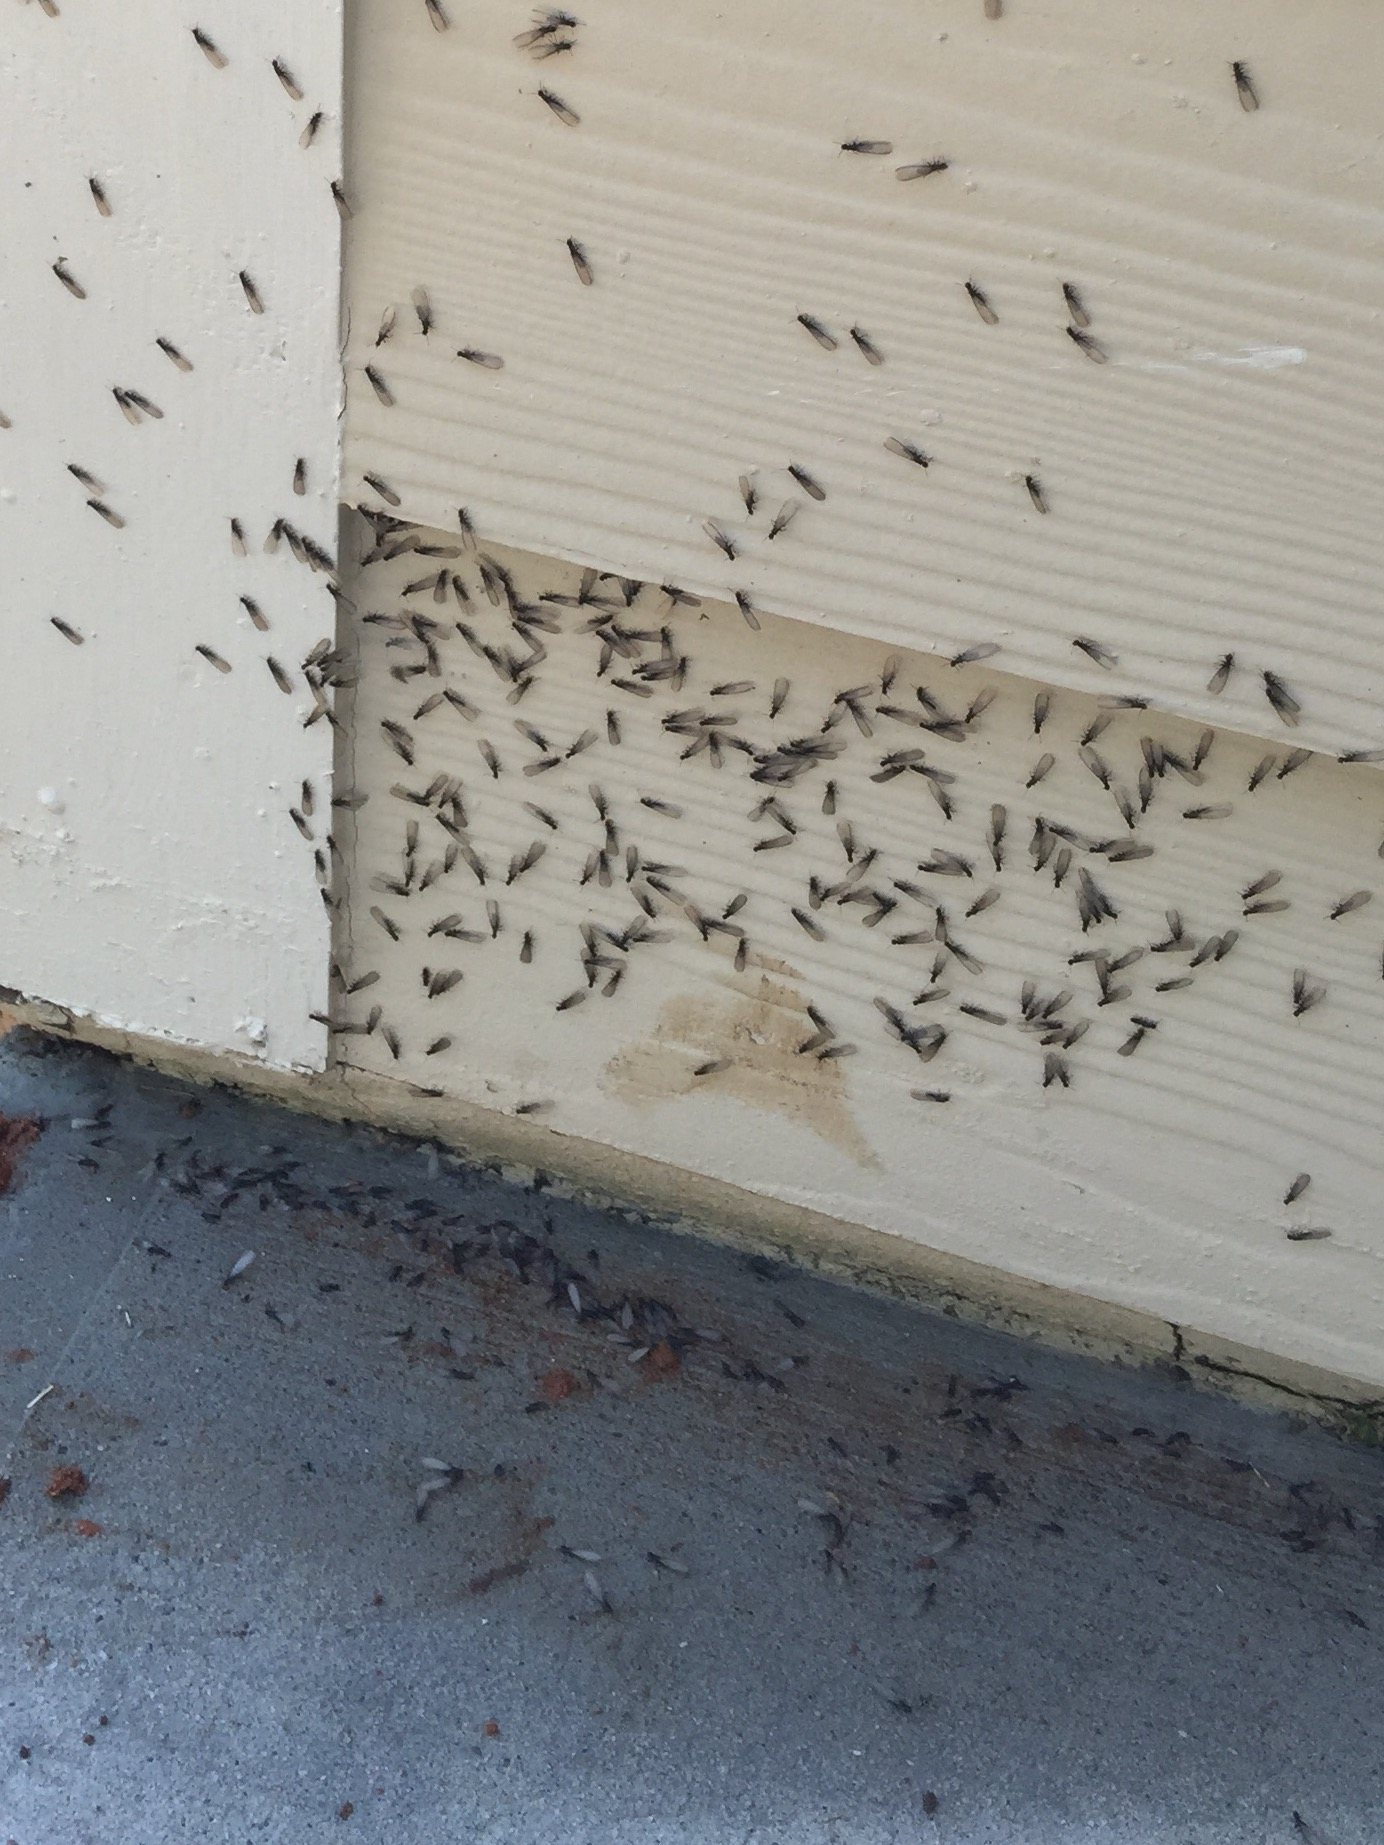 Termite Swarmers come out mainly in the Spring. There weak flyers and are attracted to light. They are out to mate and reproduce. They will shed there wings quickly.